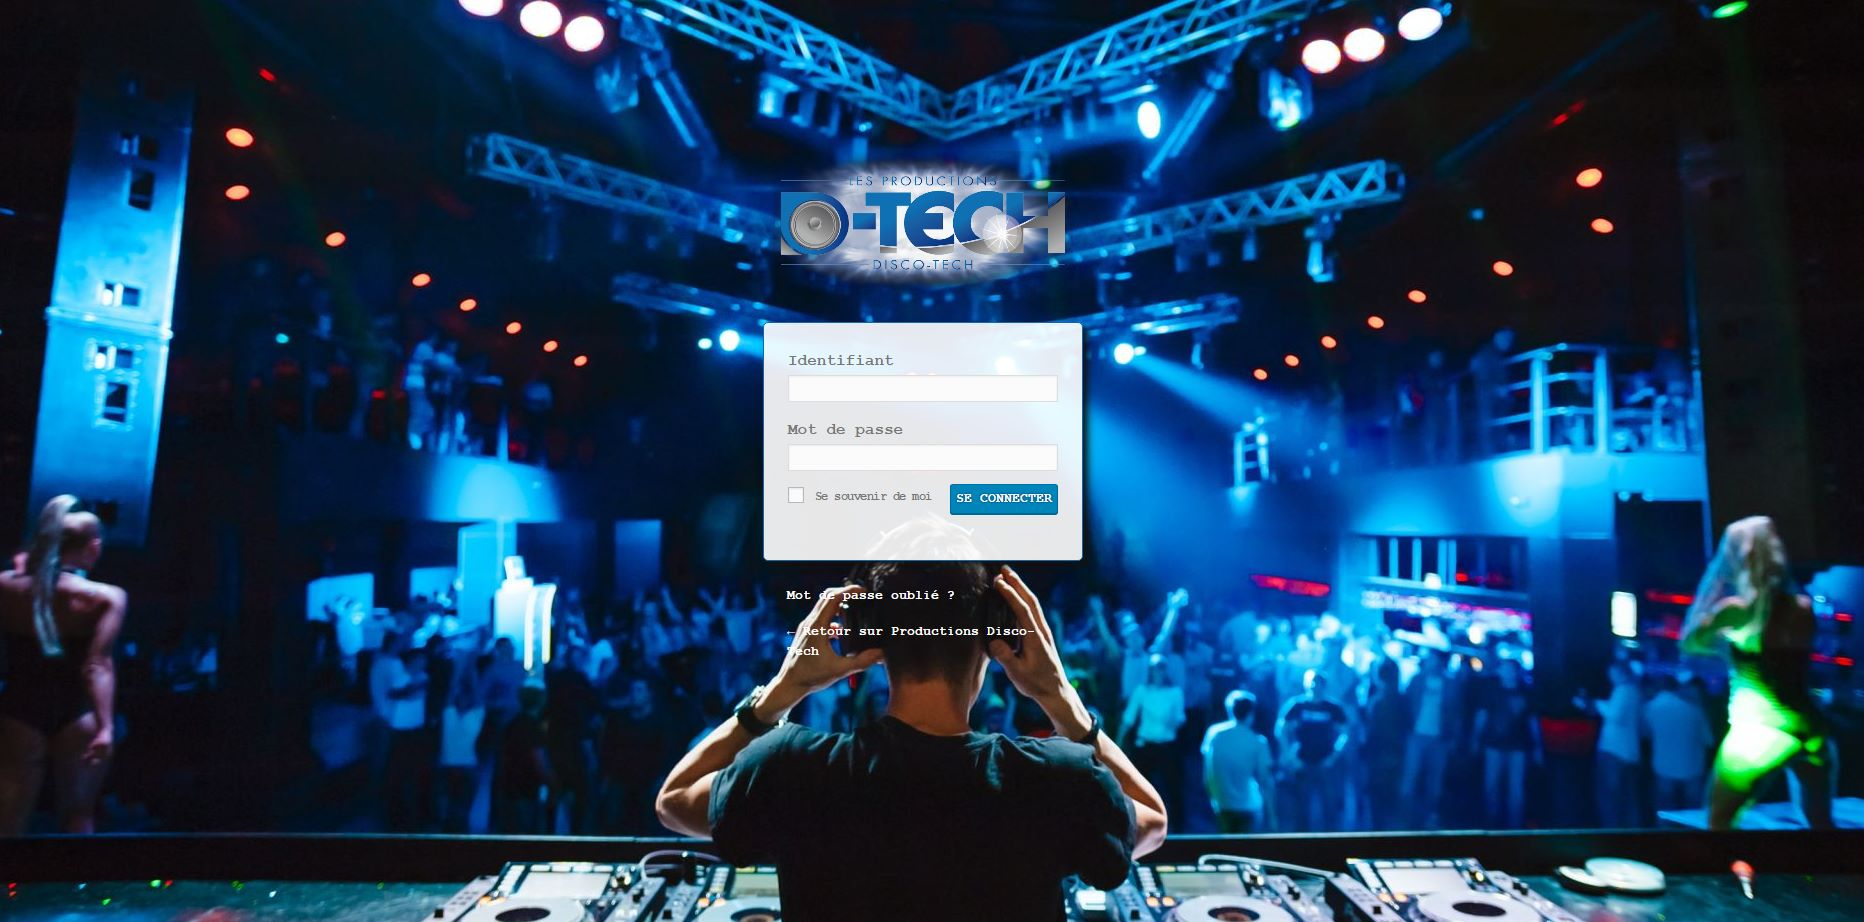 conception-web-productions-disco-tech-11